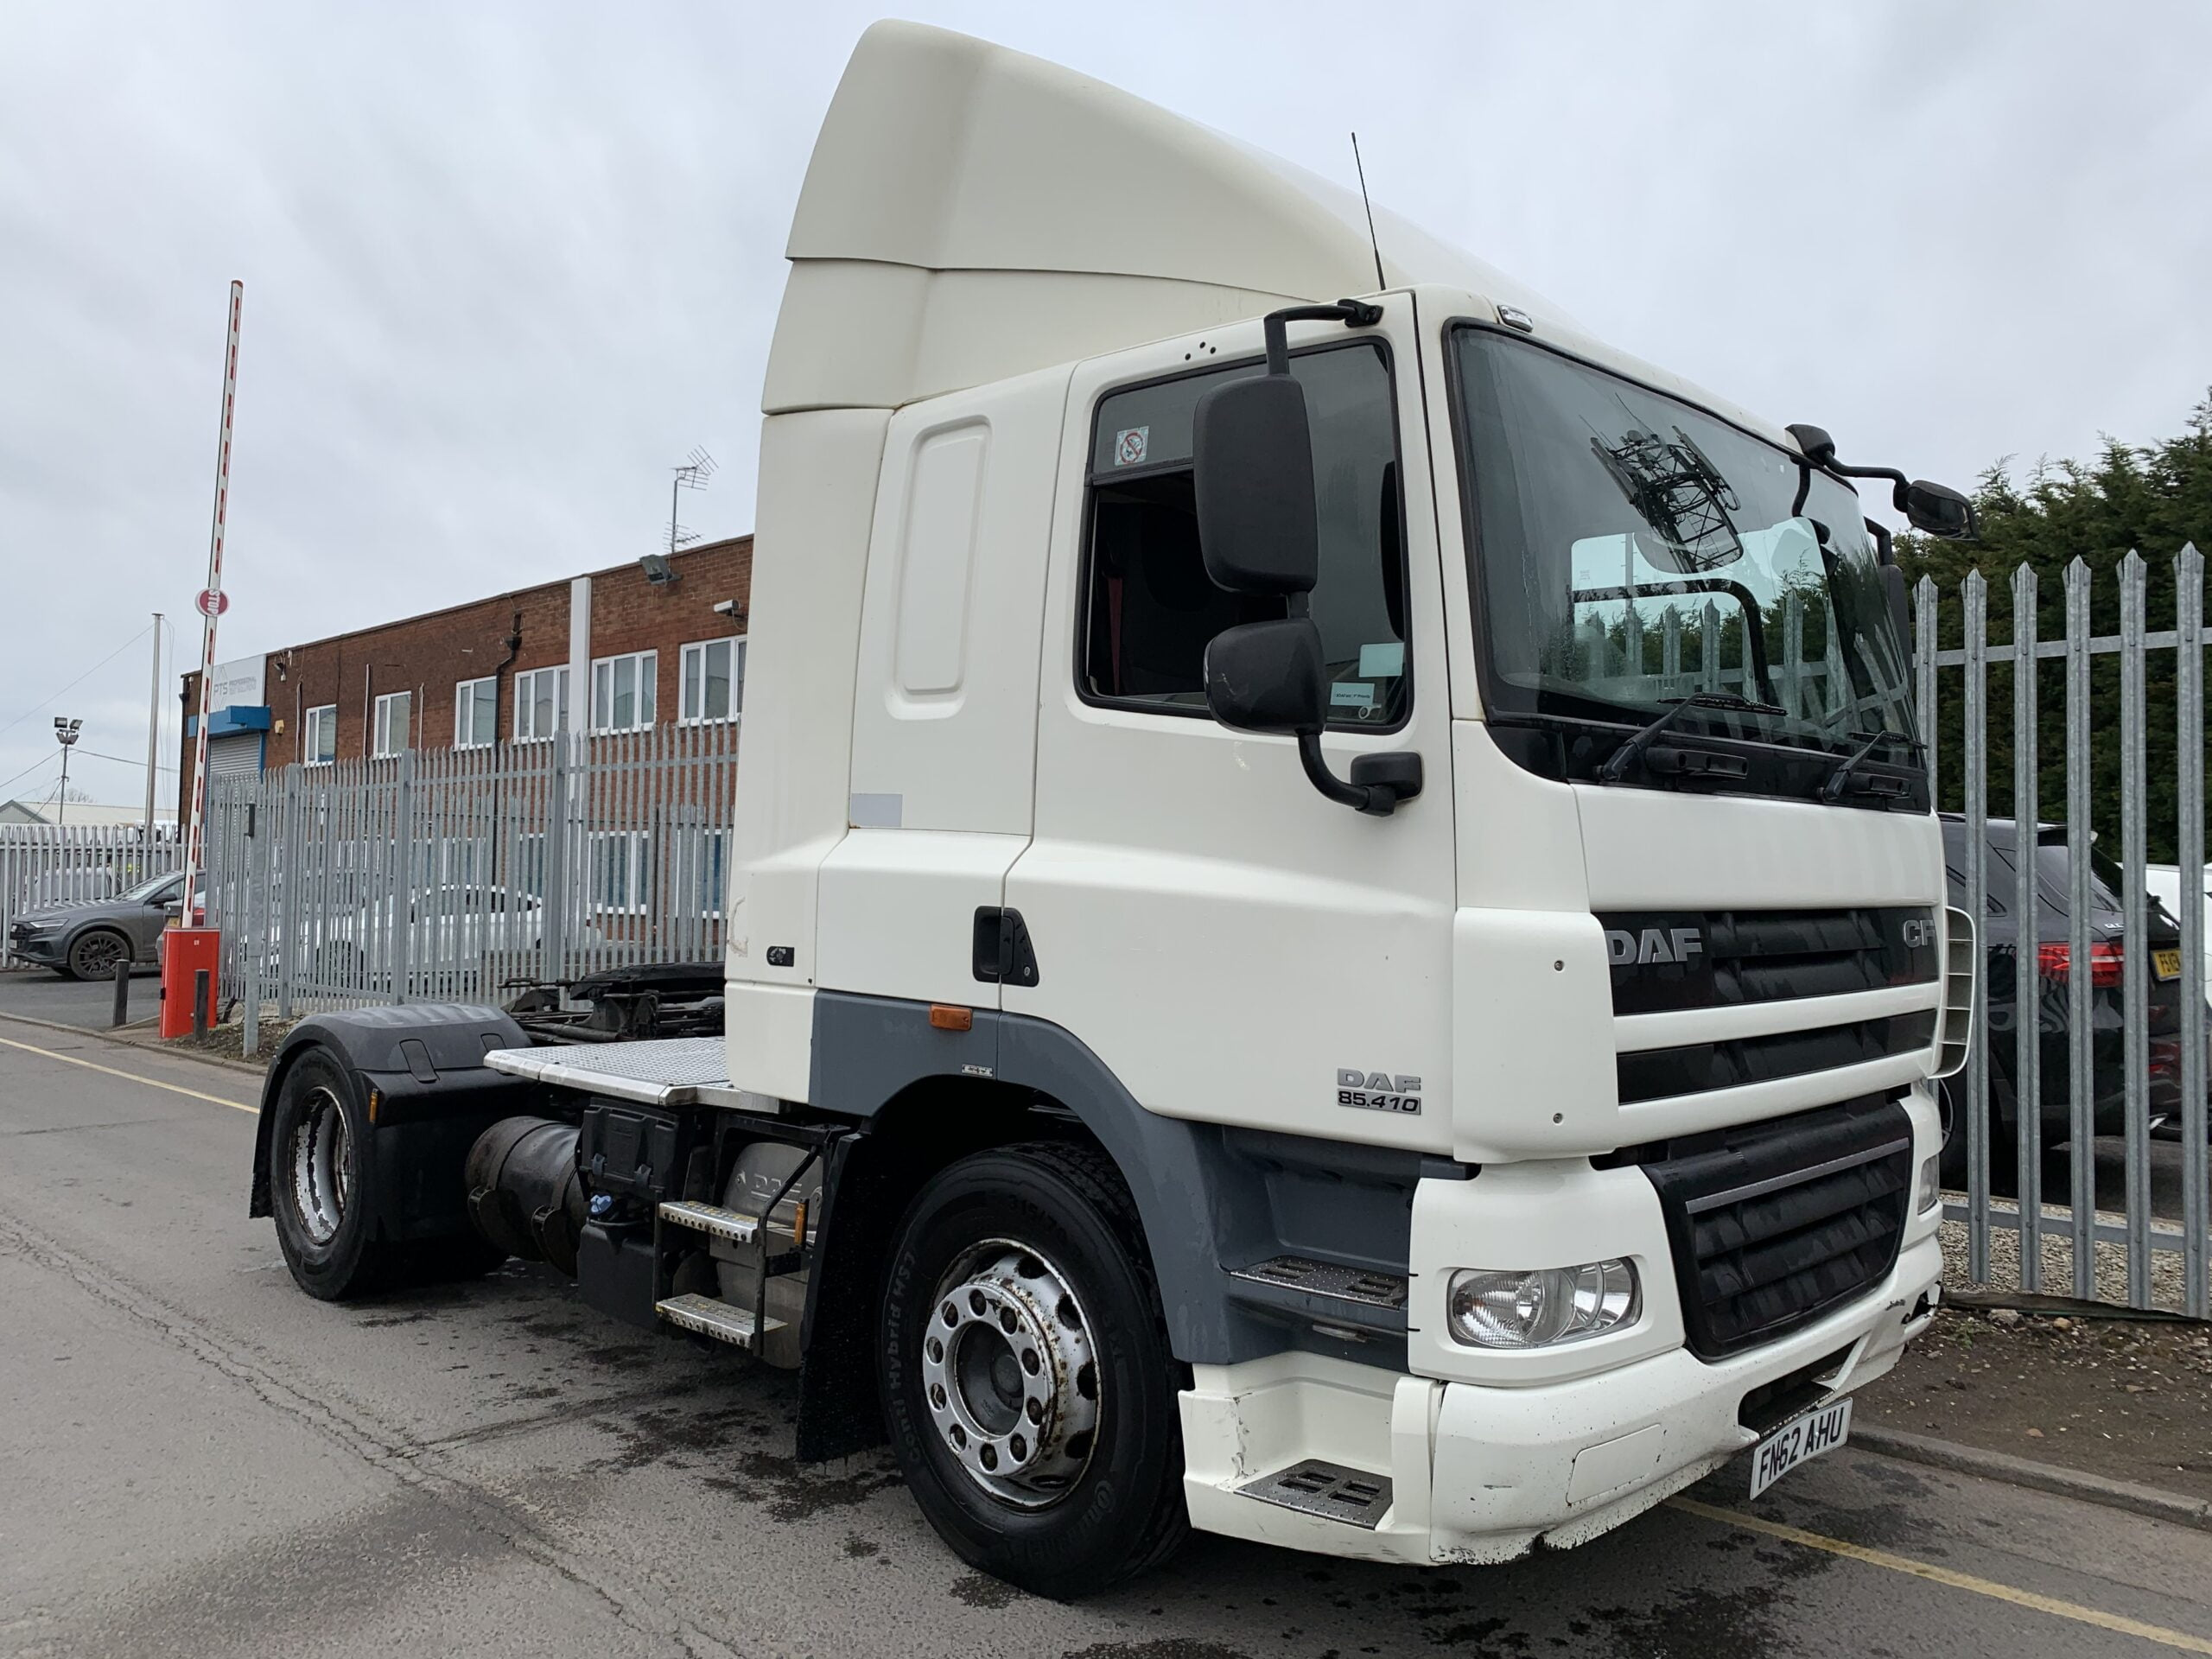 2012 (62) DAF CF, Euro 5, 410bhp, Space Single Sleeper Cab, Automatic Gearbox, 3.8m Wheelbase, Aluminium Catwalk Infill Panels, Steering Wheel Controls, Xtra Comfort Mattress, Rear Window in Cab, Choice Available.